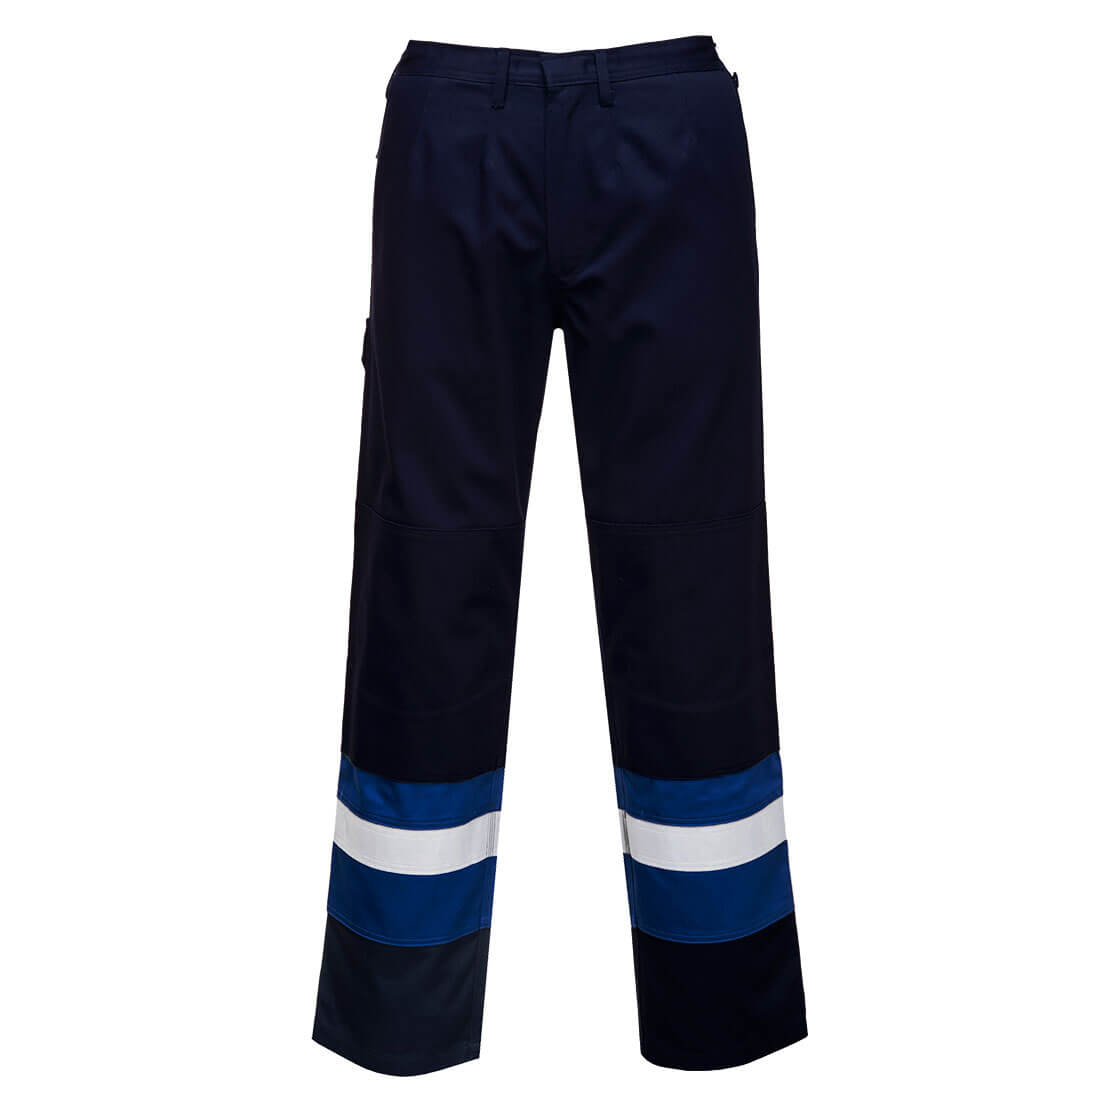 Image of Biz Flame Mens Flame Resistant Plus Trousers Navy / Royal Large 32""